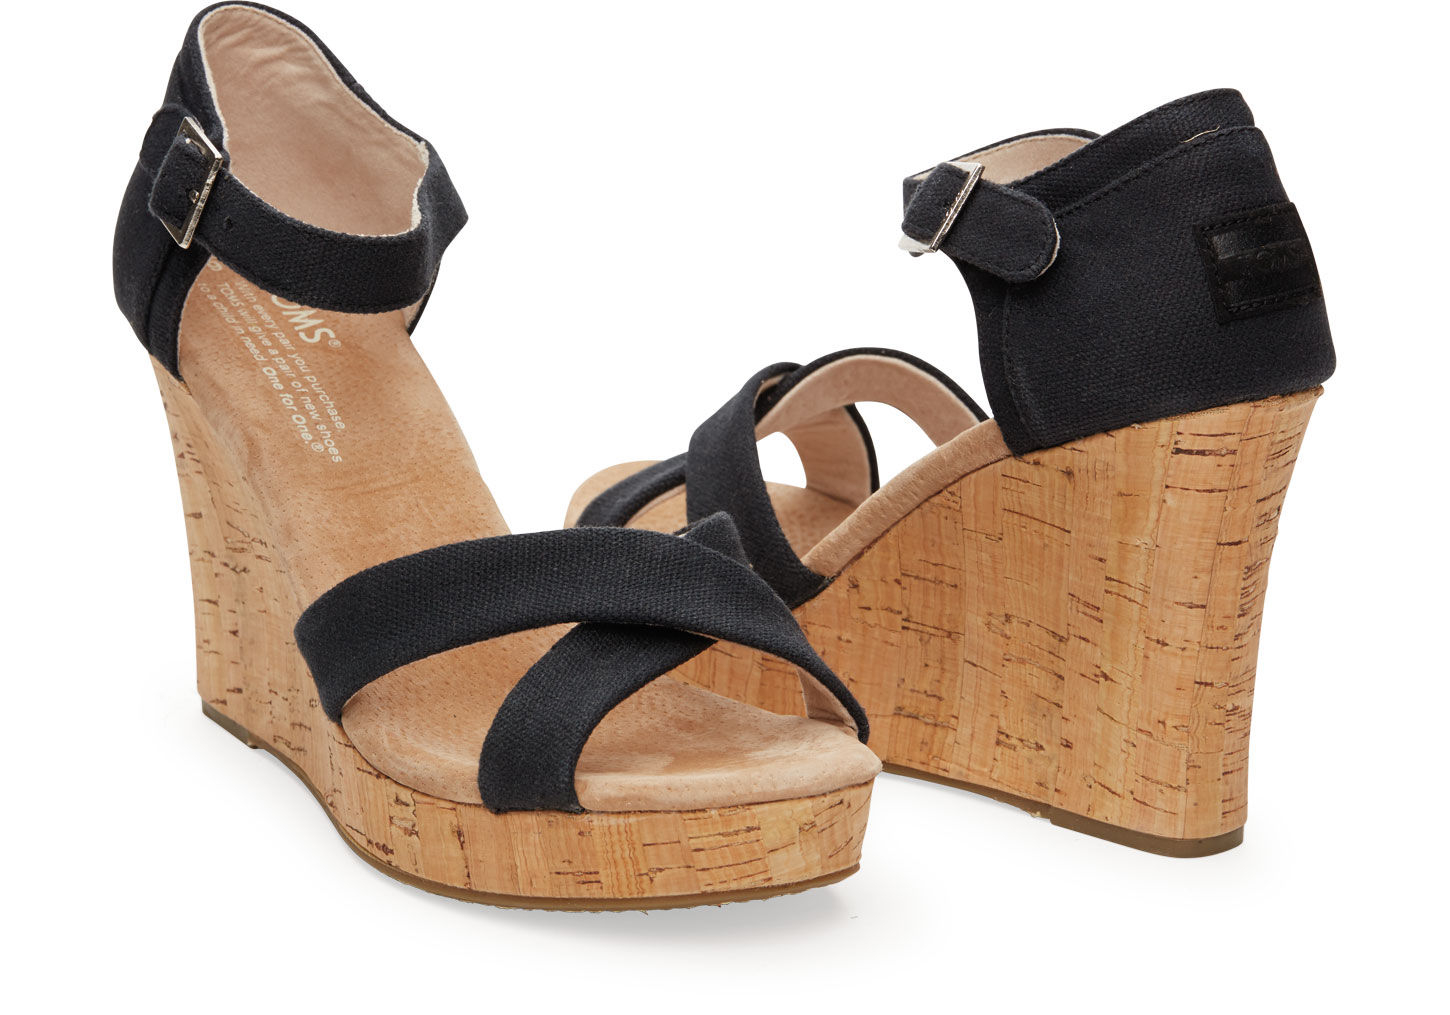 Toms Shoes Black Canvas Wedge